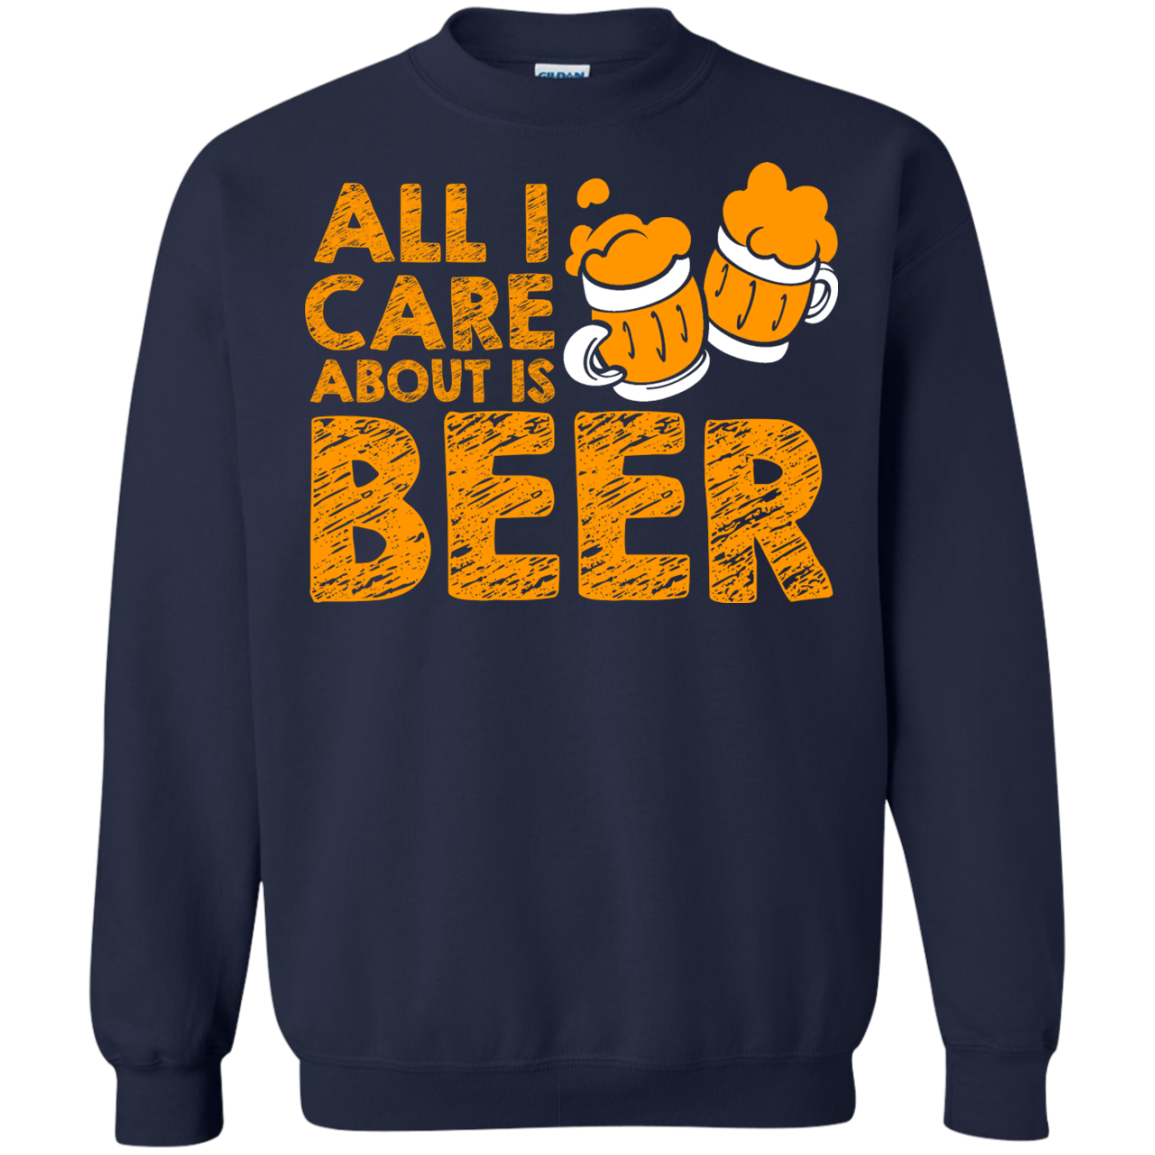 ALL I CARE ABOUT IS BEER T-Shirt & Hoodie, Sweatshirt - The Sun Cat